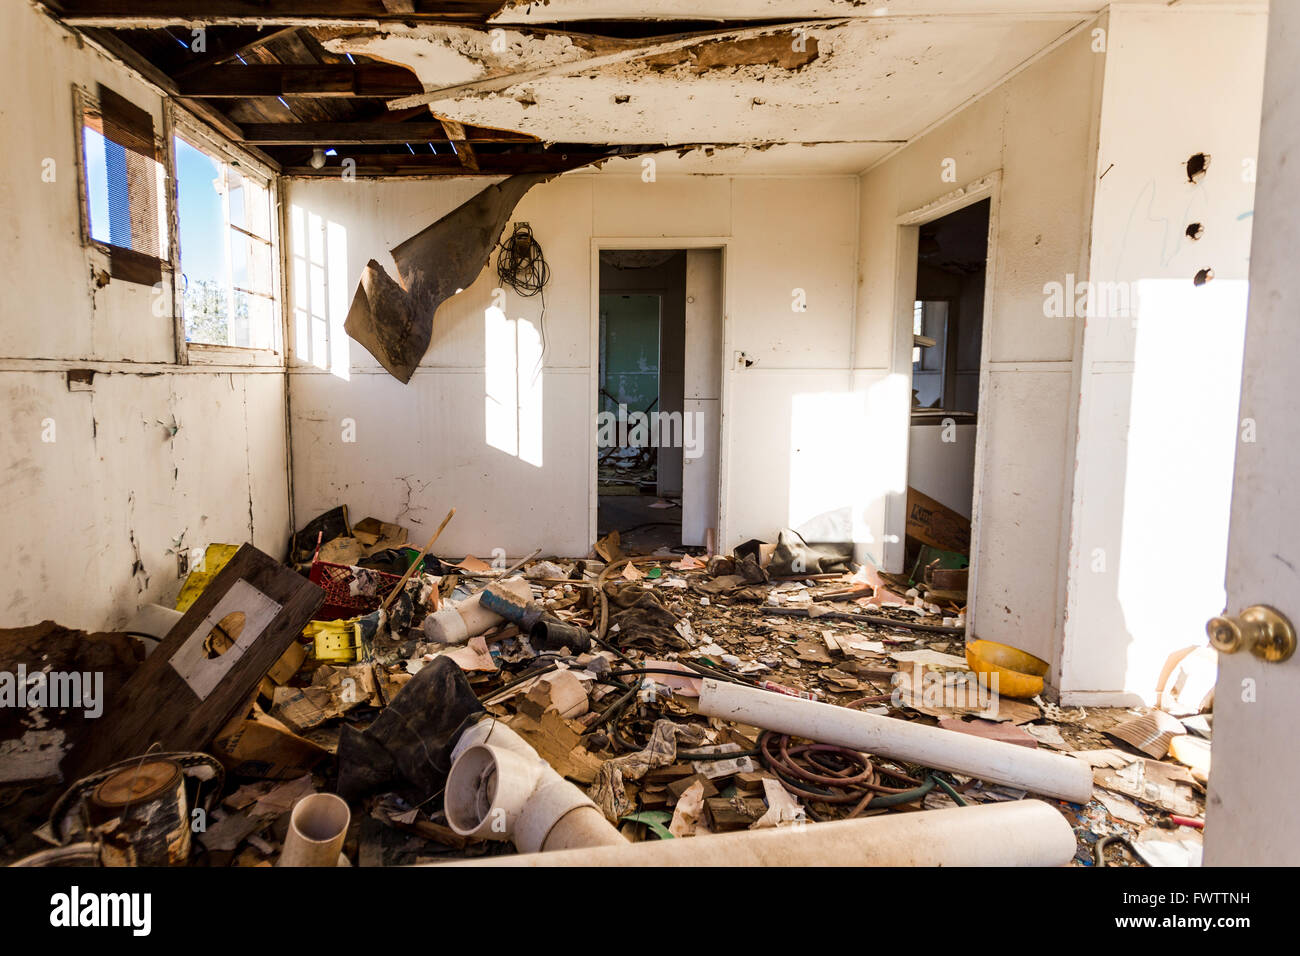 House, filthy, dirty,abandoned,demolished,horrific, garbages - Stock Image